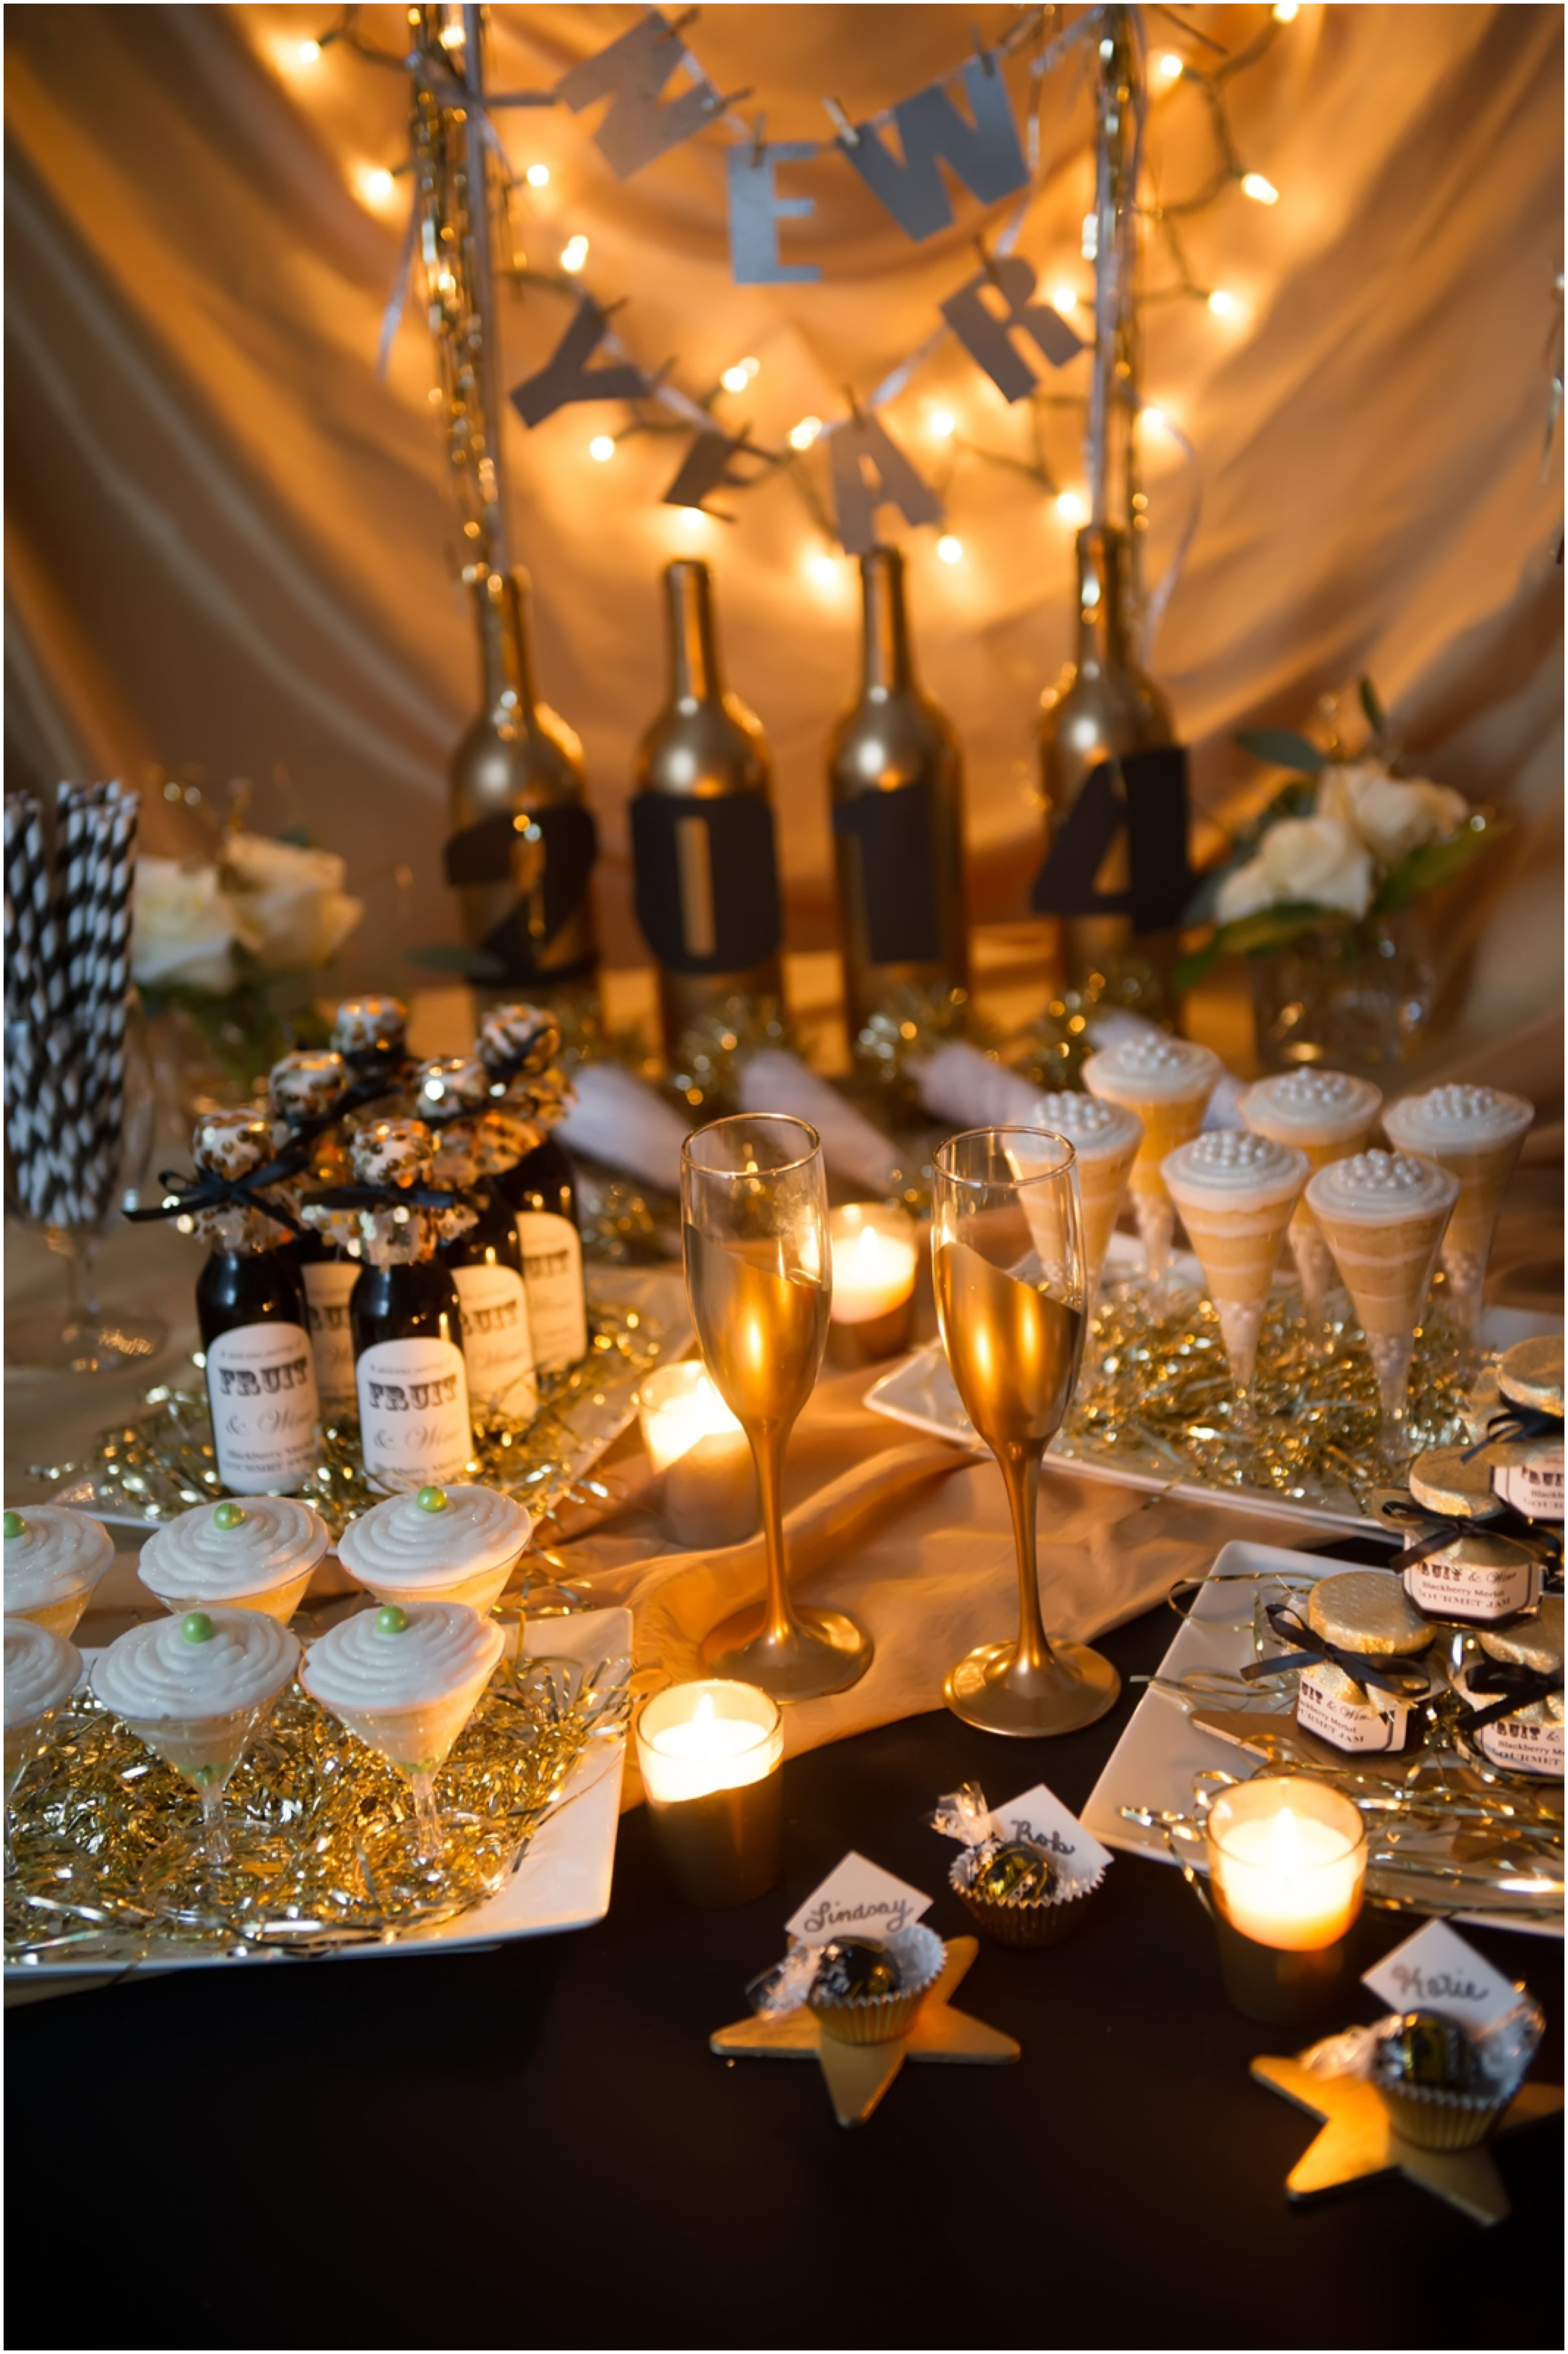 New Years Eve Wedding Decorations When Considering Decoration You Need To Think Of Color Schemes Inexpensive We